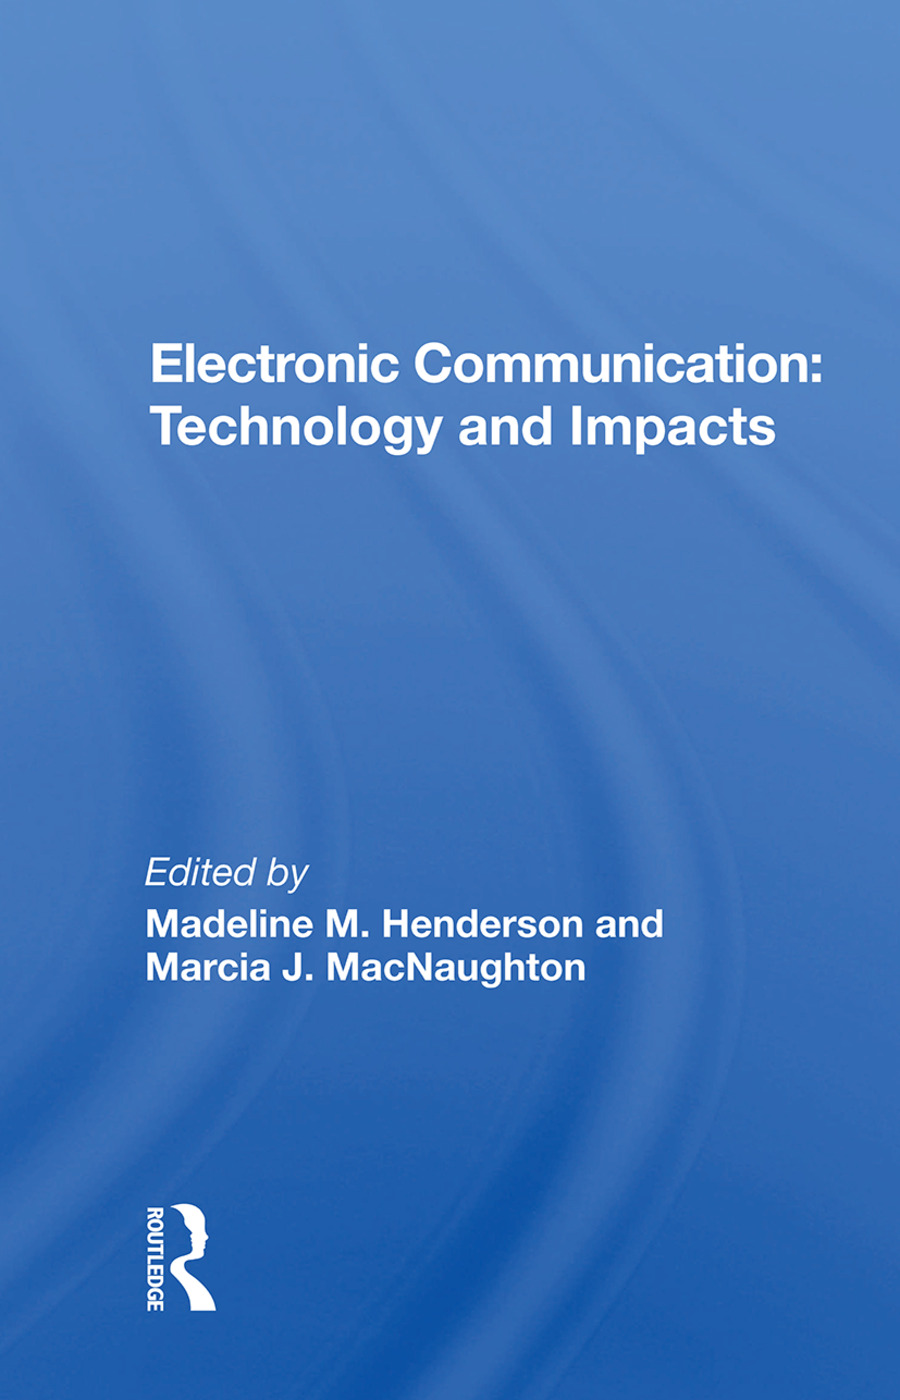 Electronic Communication: Technology and Impacts